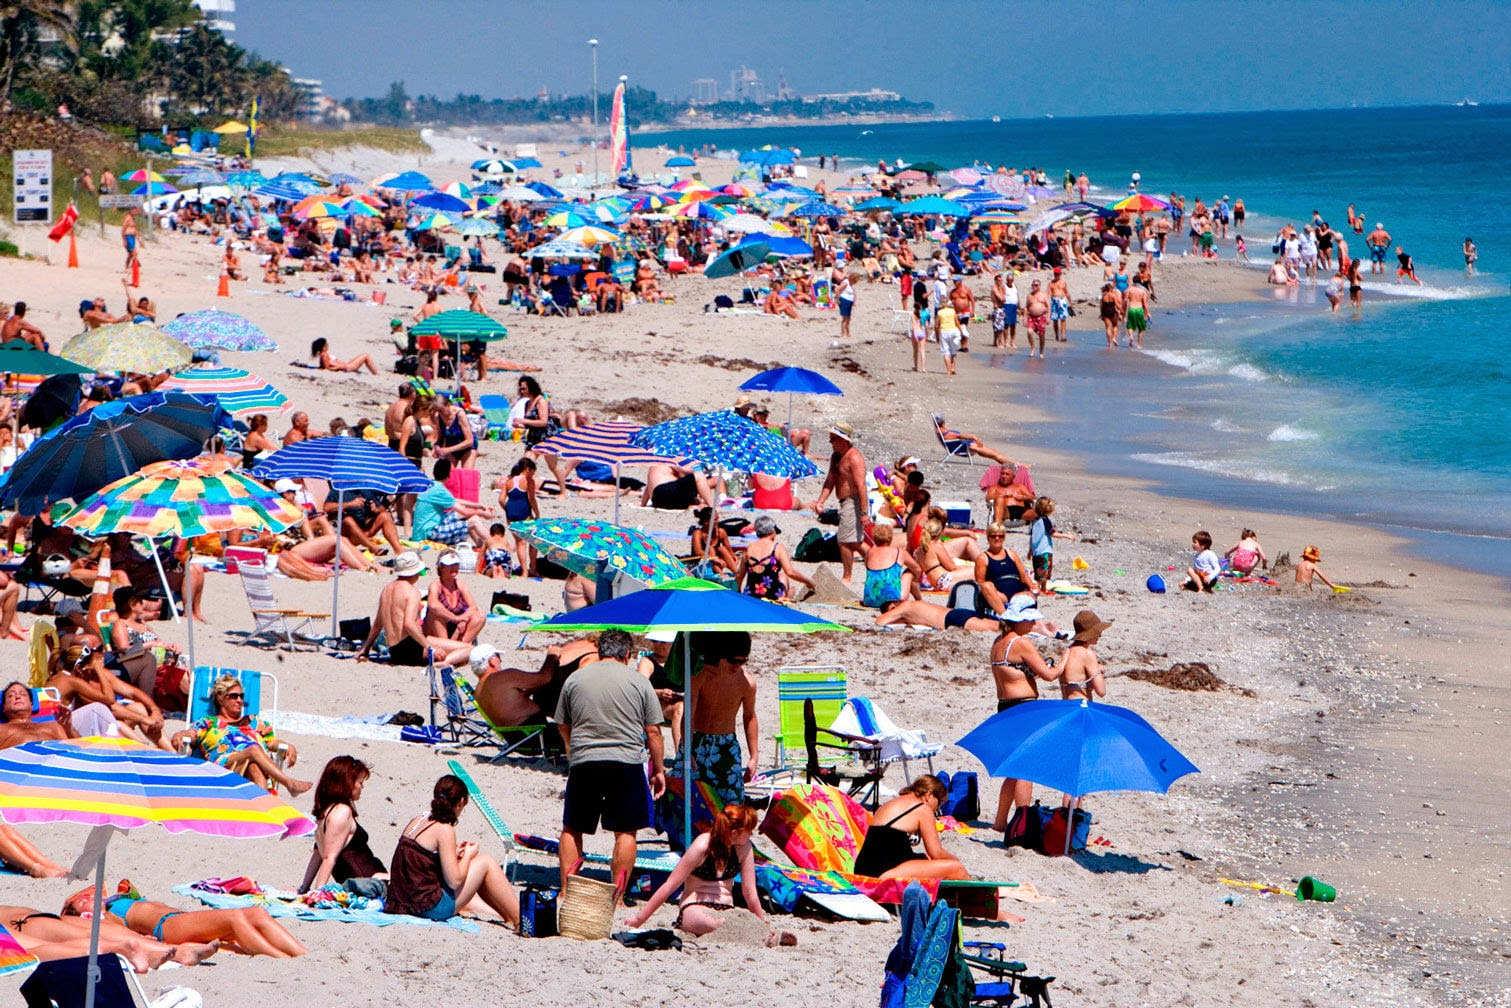 Beach labor day quotes quotesgram for Labor day weekend trips